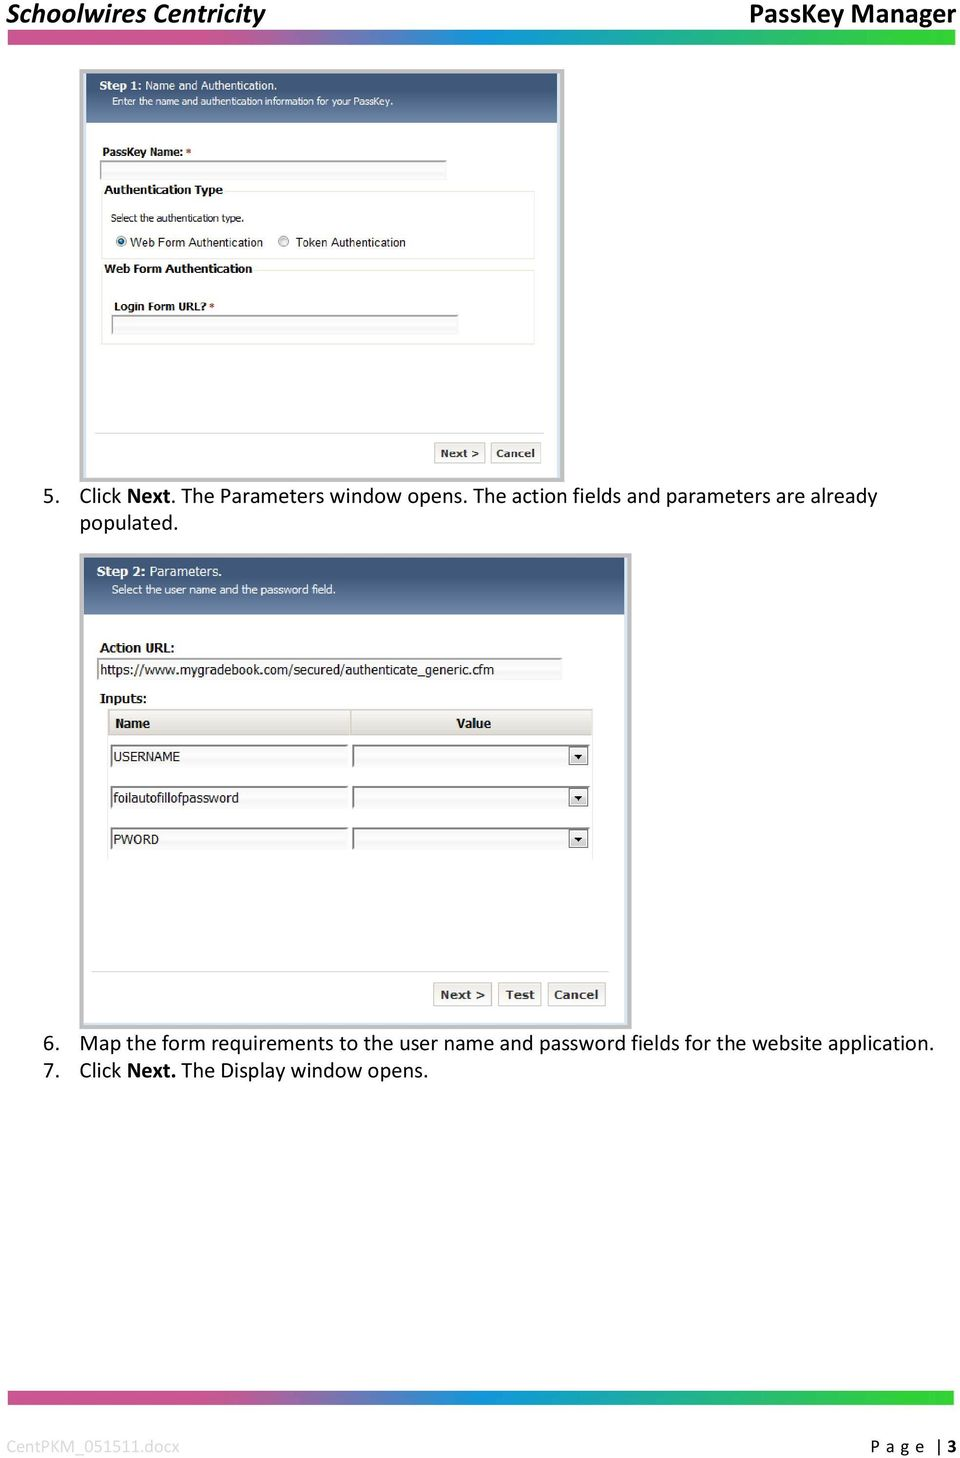 Map the form requirements to the user name and password fields